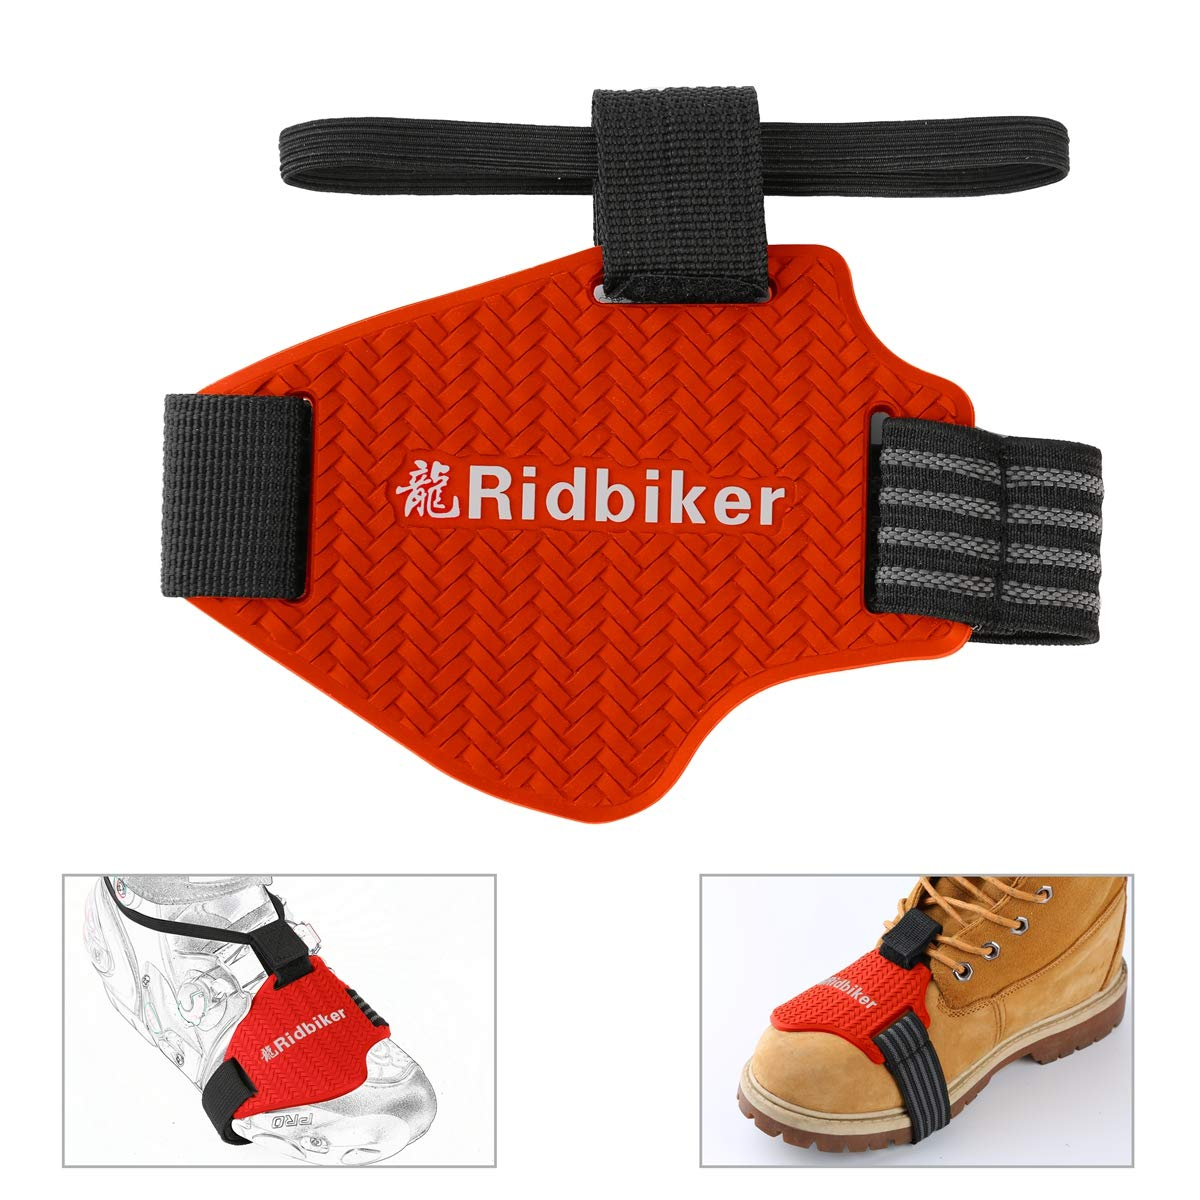 Ridbiker Motorcycle Motorbike Shift Pad Shoe Boot Cover Protective Gear Blue Ⅲ